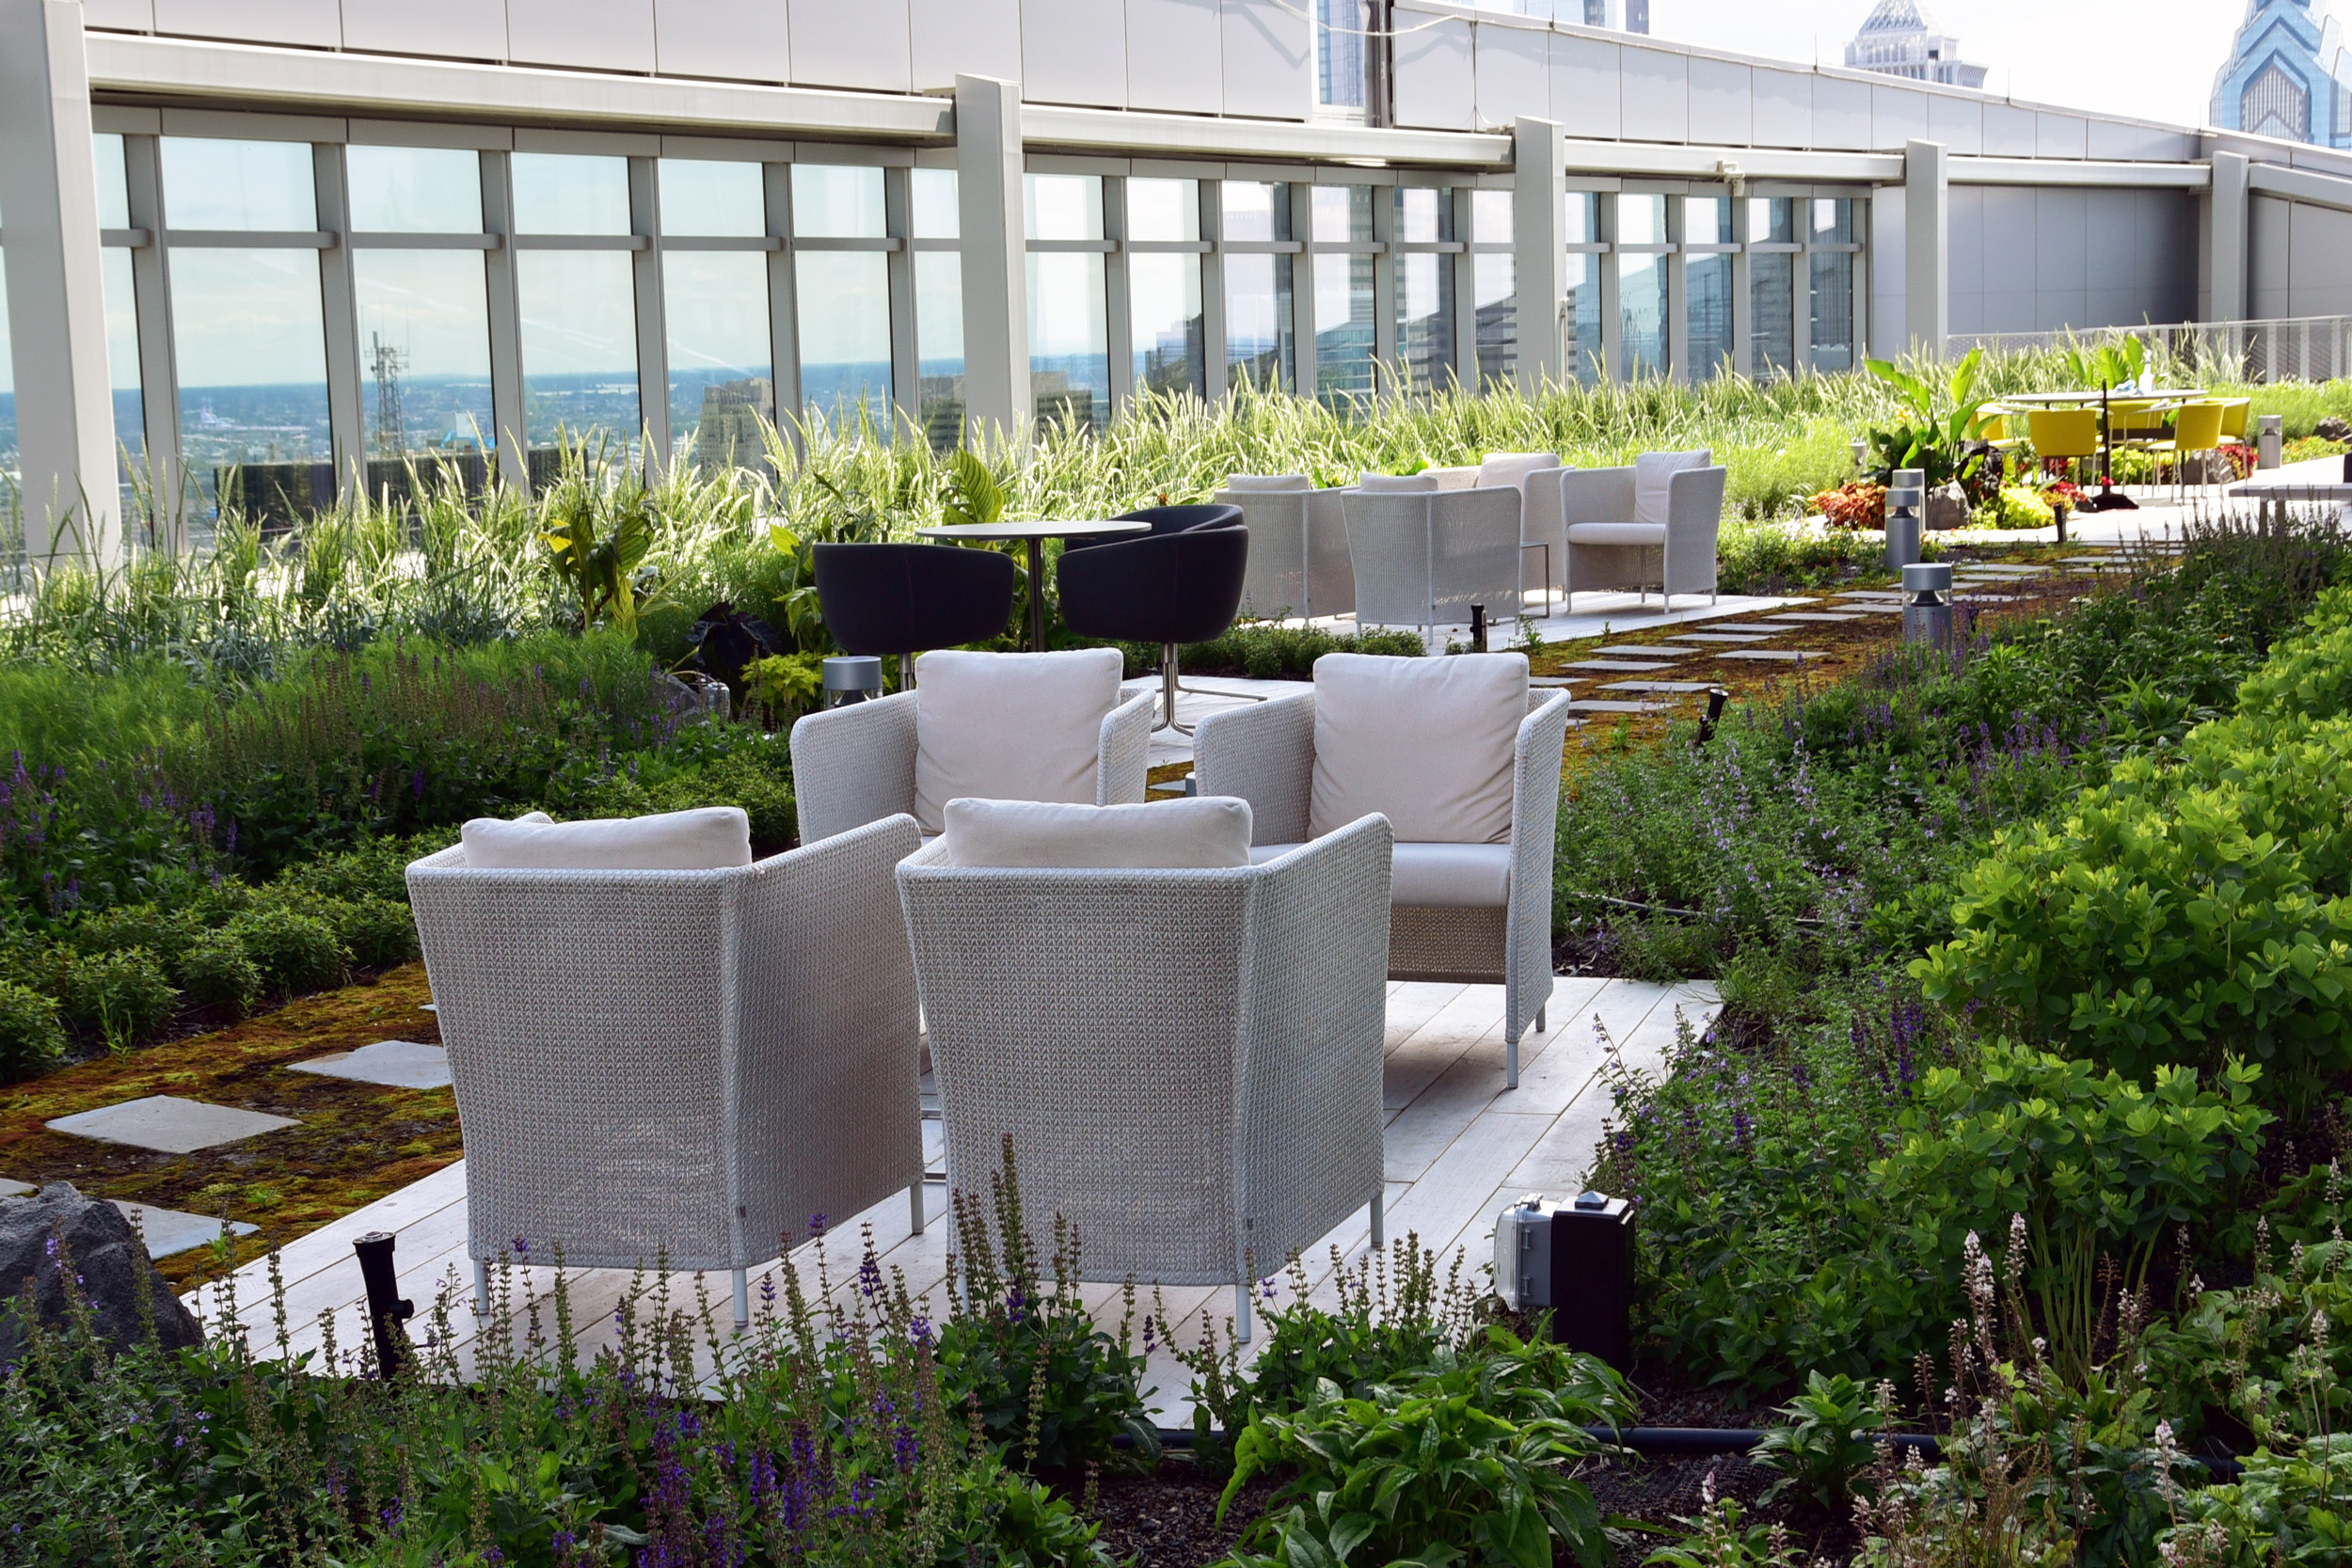 GCW developed and installed a new planting design that included hardy flowering perennial species, and tropicals on the level 28 green roof.